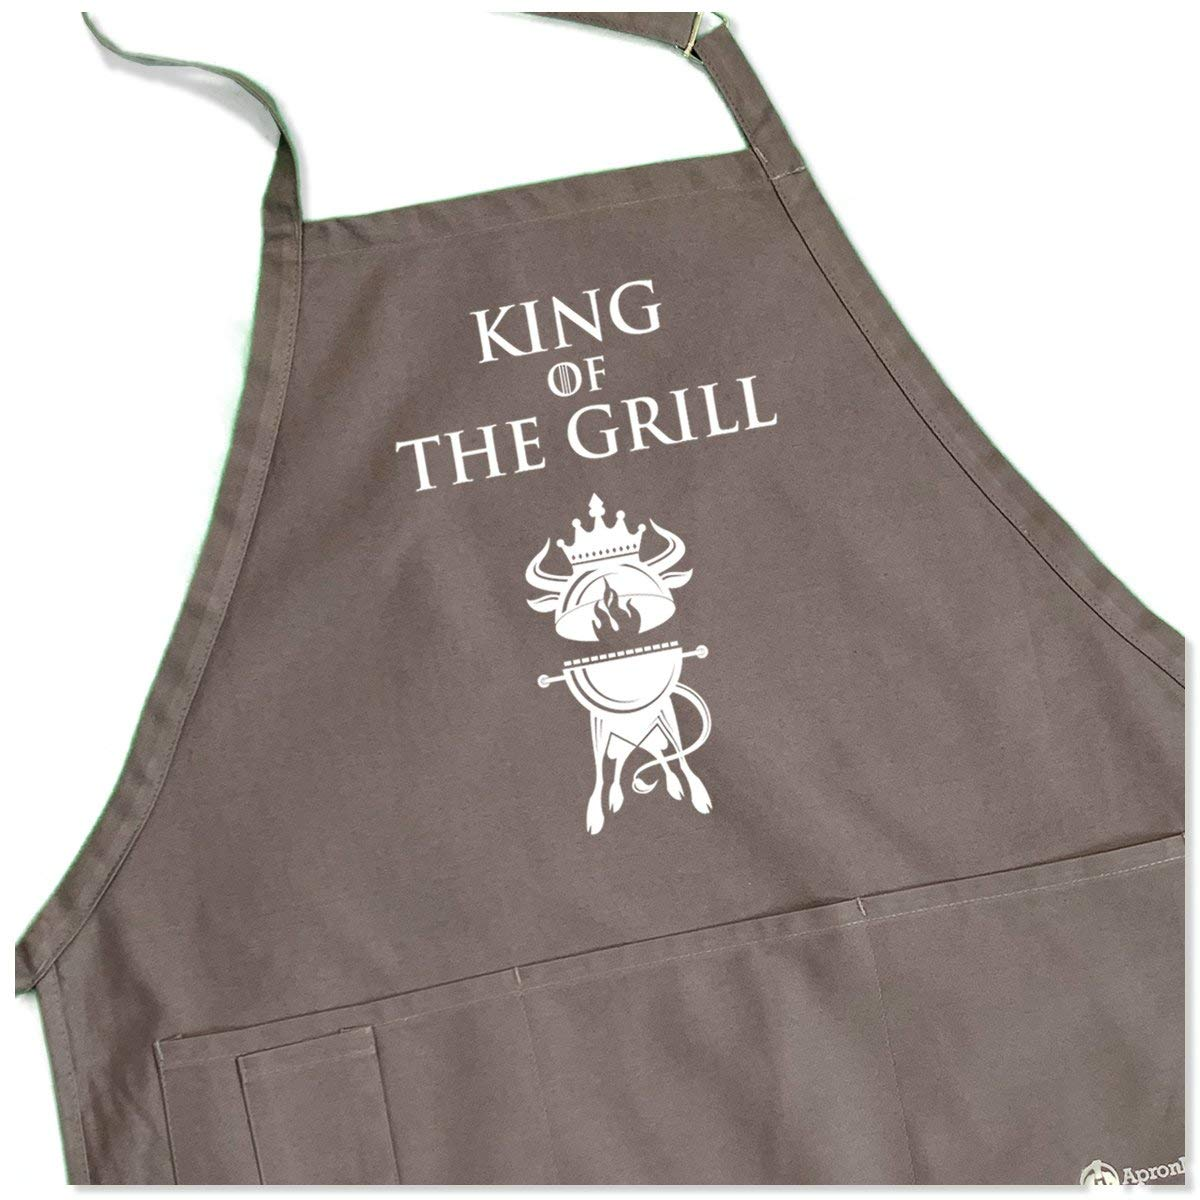 ApronMen King of The Grill Apron – BBQ Crest – 1 Size Fits All Adjustable Strap – Gray Color